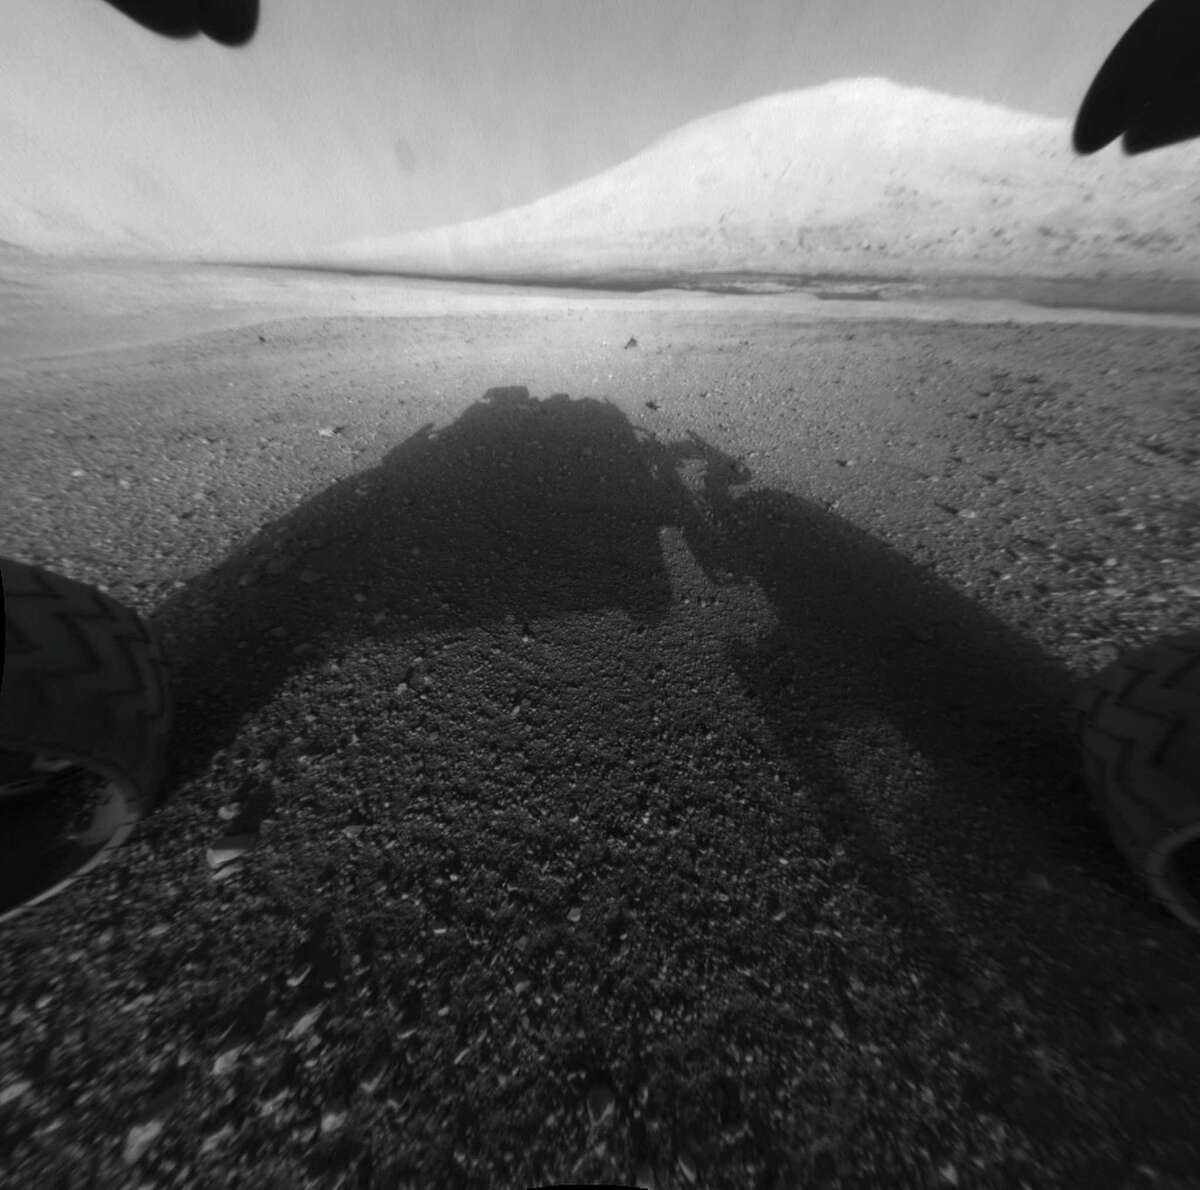 This image taken by NASA's Curiosity shows what lies ahead for the rover -- its main science target, informally called Mount Sharp Monday, Aug. 6, 2012. The rover's shadow can be seen in the foreground, and the dark bands beyond are dunes. Rising up in the distance is the highest peak of Mount Sharp at a height of about 3.4 miles (5.5 kilometers), taller than Mt. Whitney in California. The Curiosity team hopes to drive the rover to the mountain to investigate its lower layers, which scientists think hold clues to past environmental change. This image was captured by the rover's front left Hazard-Avoidance camera at full resolution shortly after it landed. It has not yet been linearized to remove the distorted appearance that results from its fisheye lens. (AP Photo/NASA/JPL-Caltech)